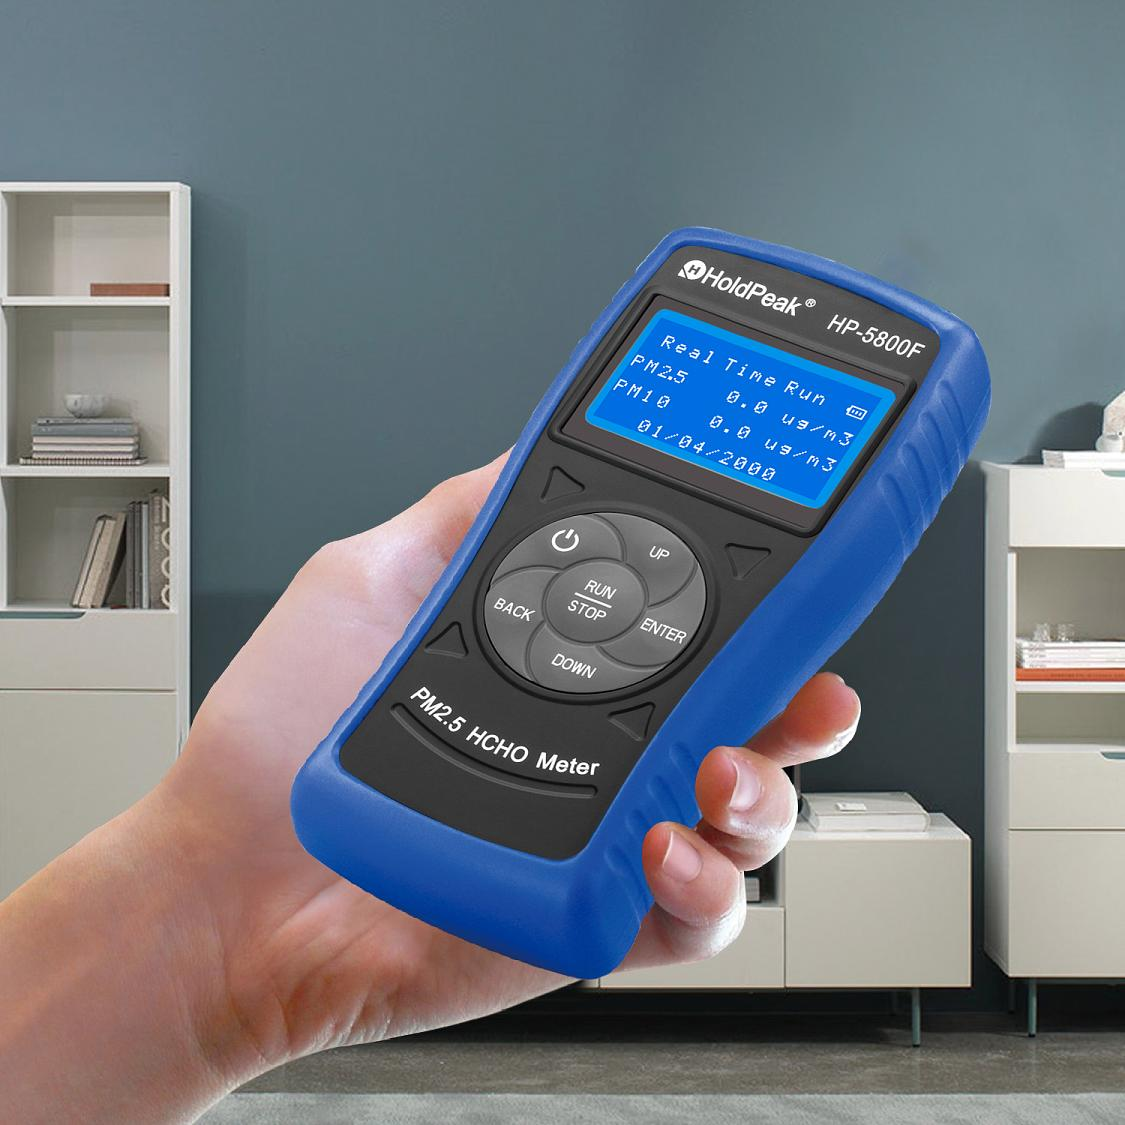 HoldPeak hp5800g air pollution monitoring app Suppliers for industry-7